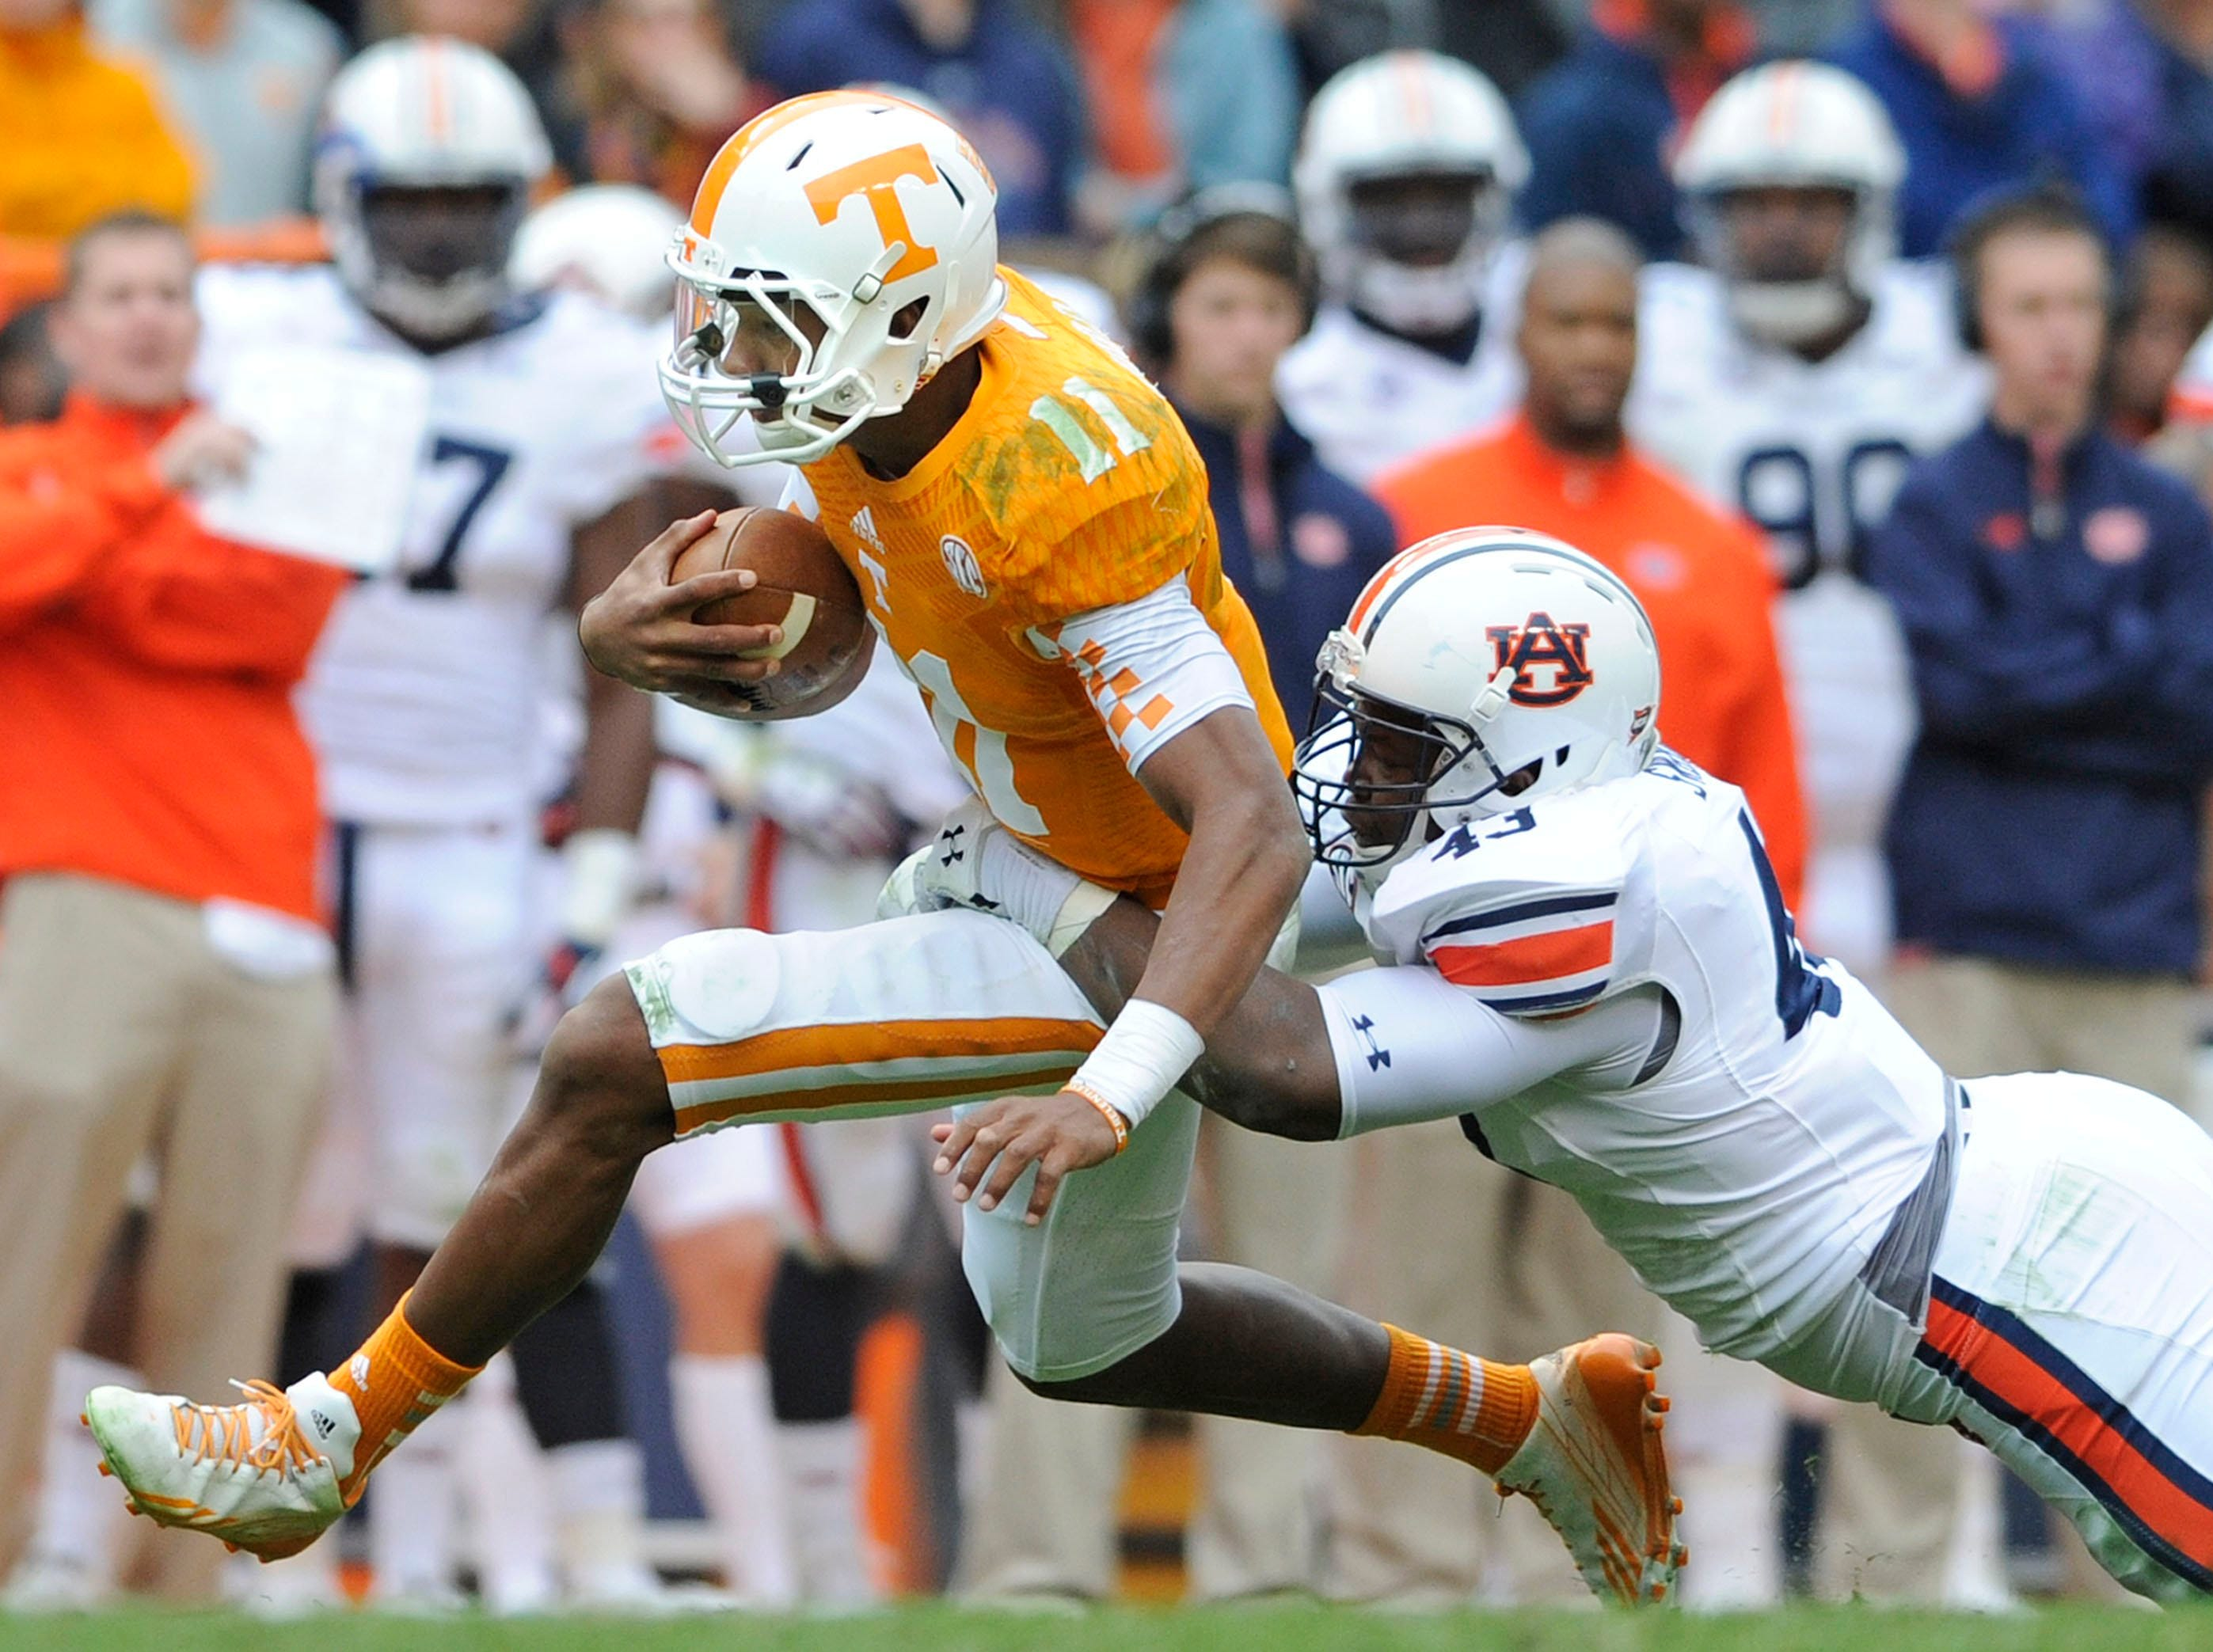 Tennessee quarterback Joshua Dobbs (11) is tackled by Auburn linebacker Anthony Swain (43) during the second half at Neyland Stadium in Knoxville on Saturday, Nov. 9, 2013.